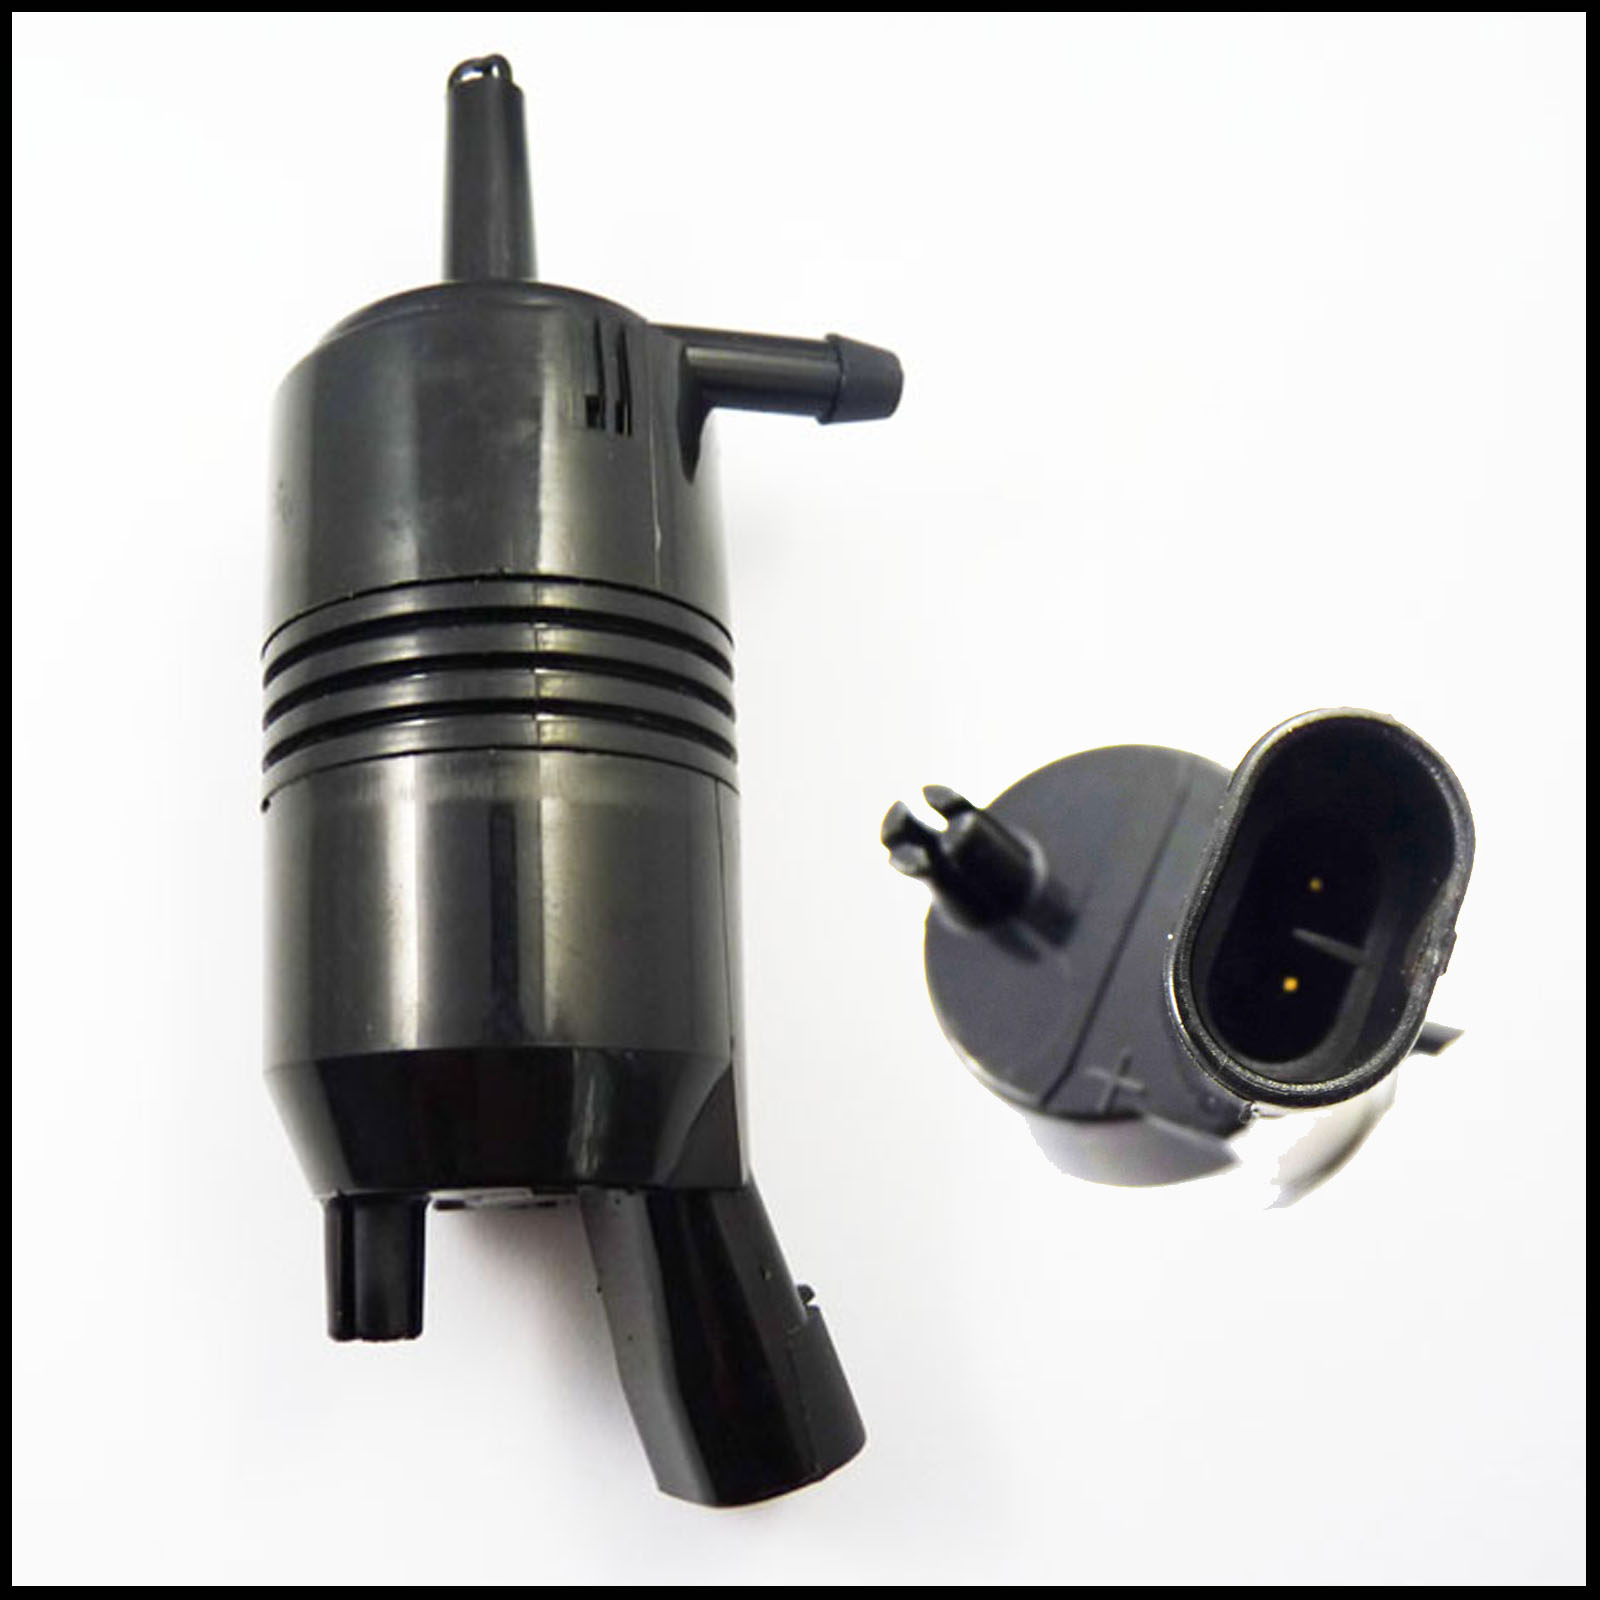 Front Rear Windshield Washer Pump For Ford Focus 2.0L 2012-2015 30699391 New